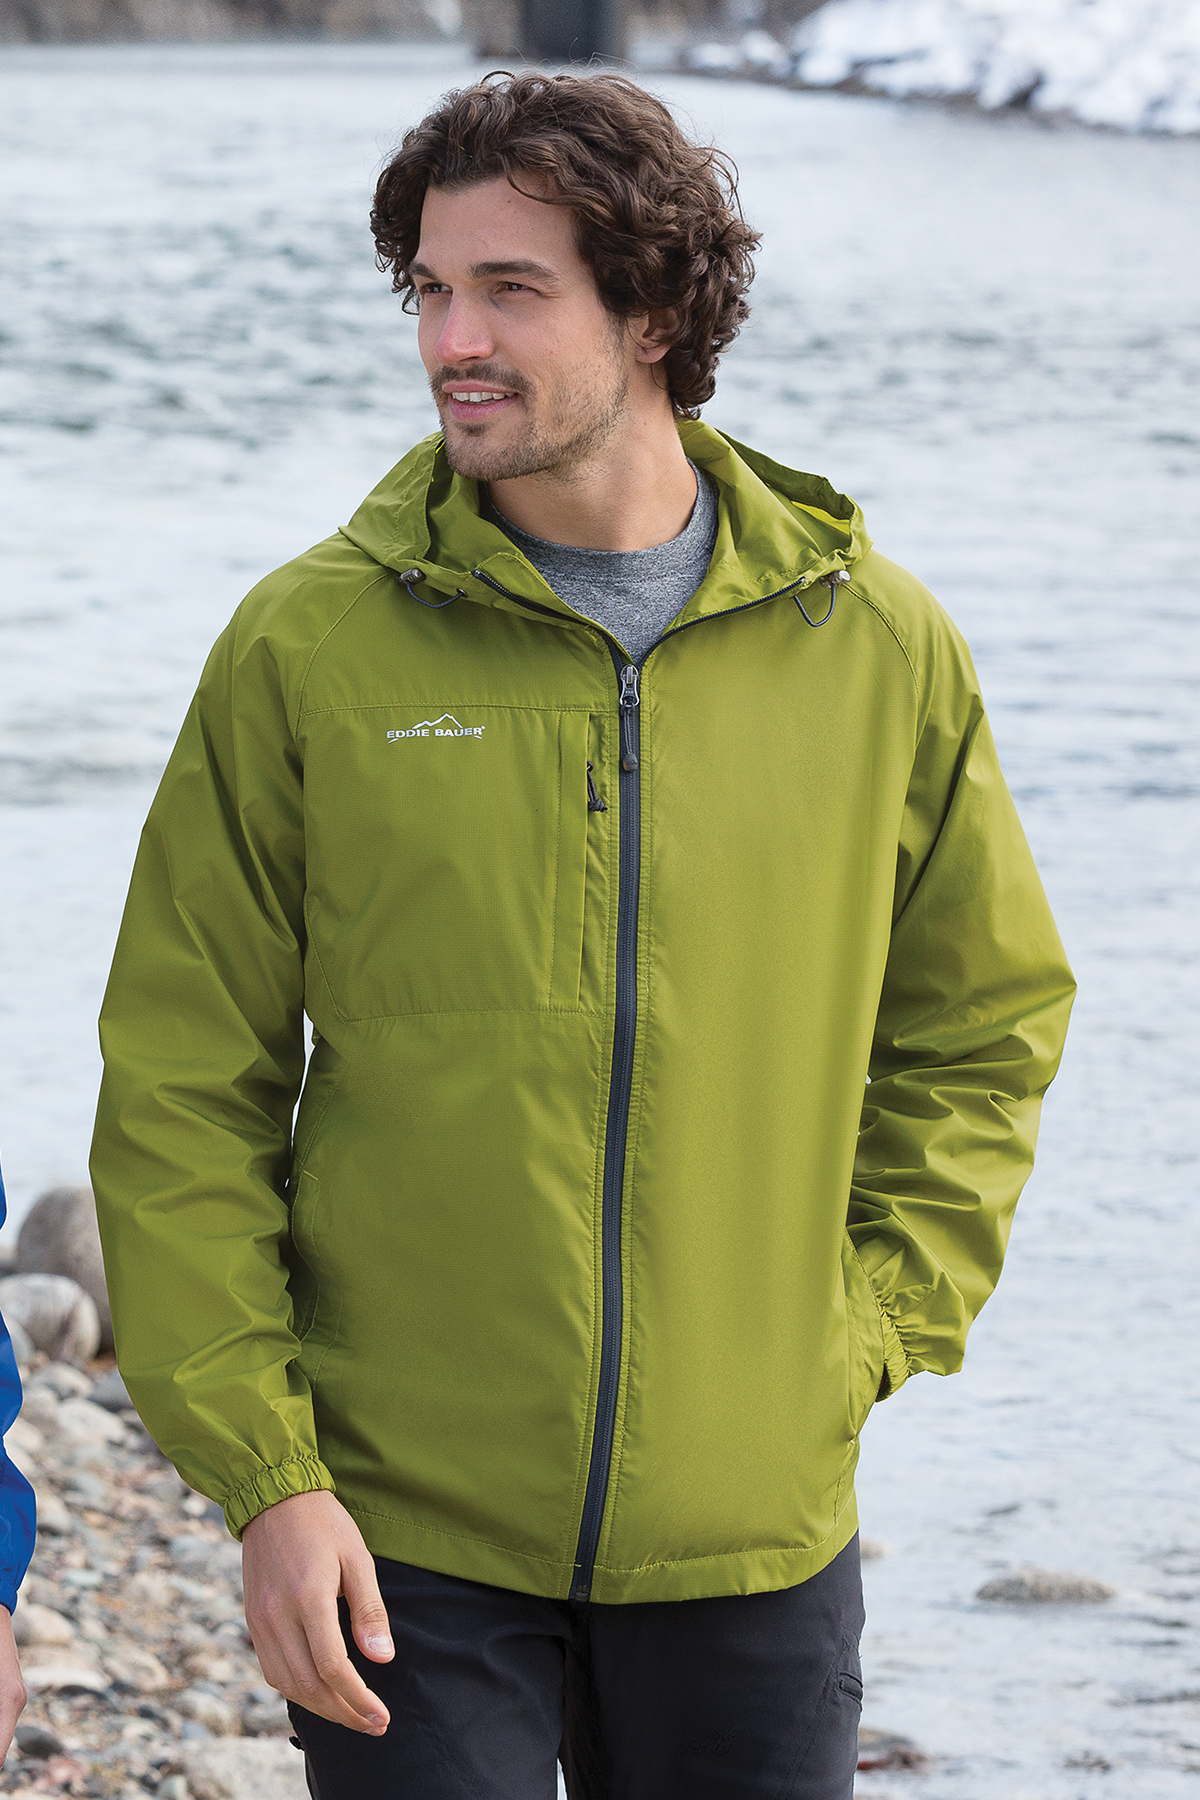 Ed Bauer Packable Wind Jacket Athletic Warm Ups